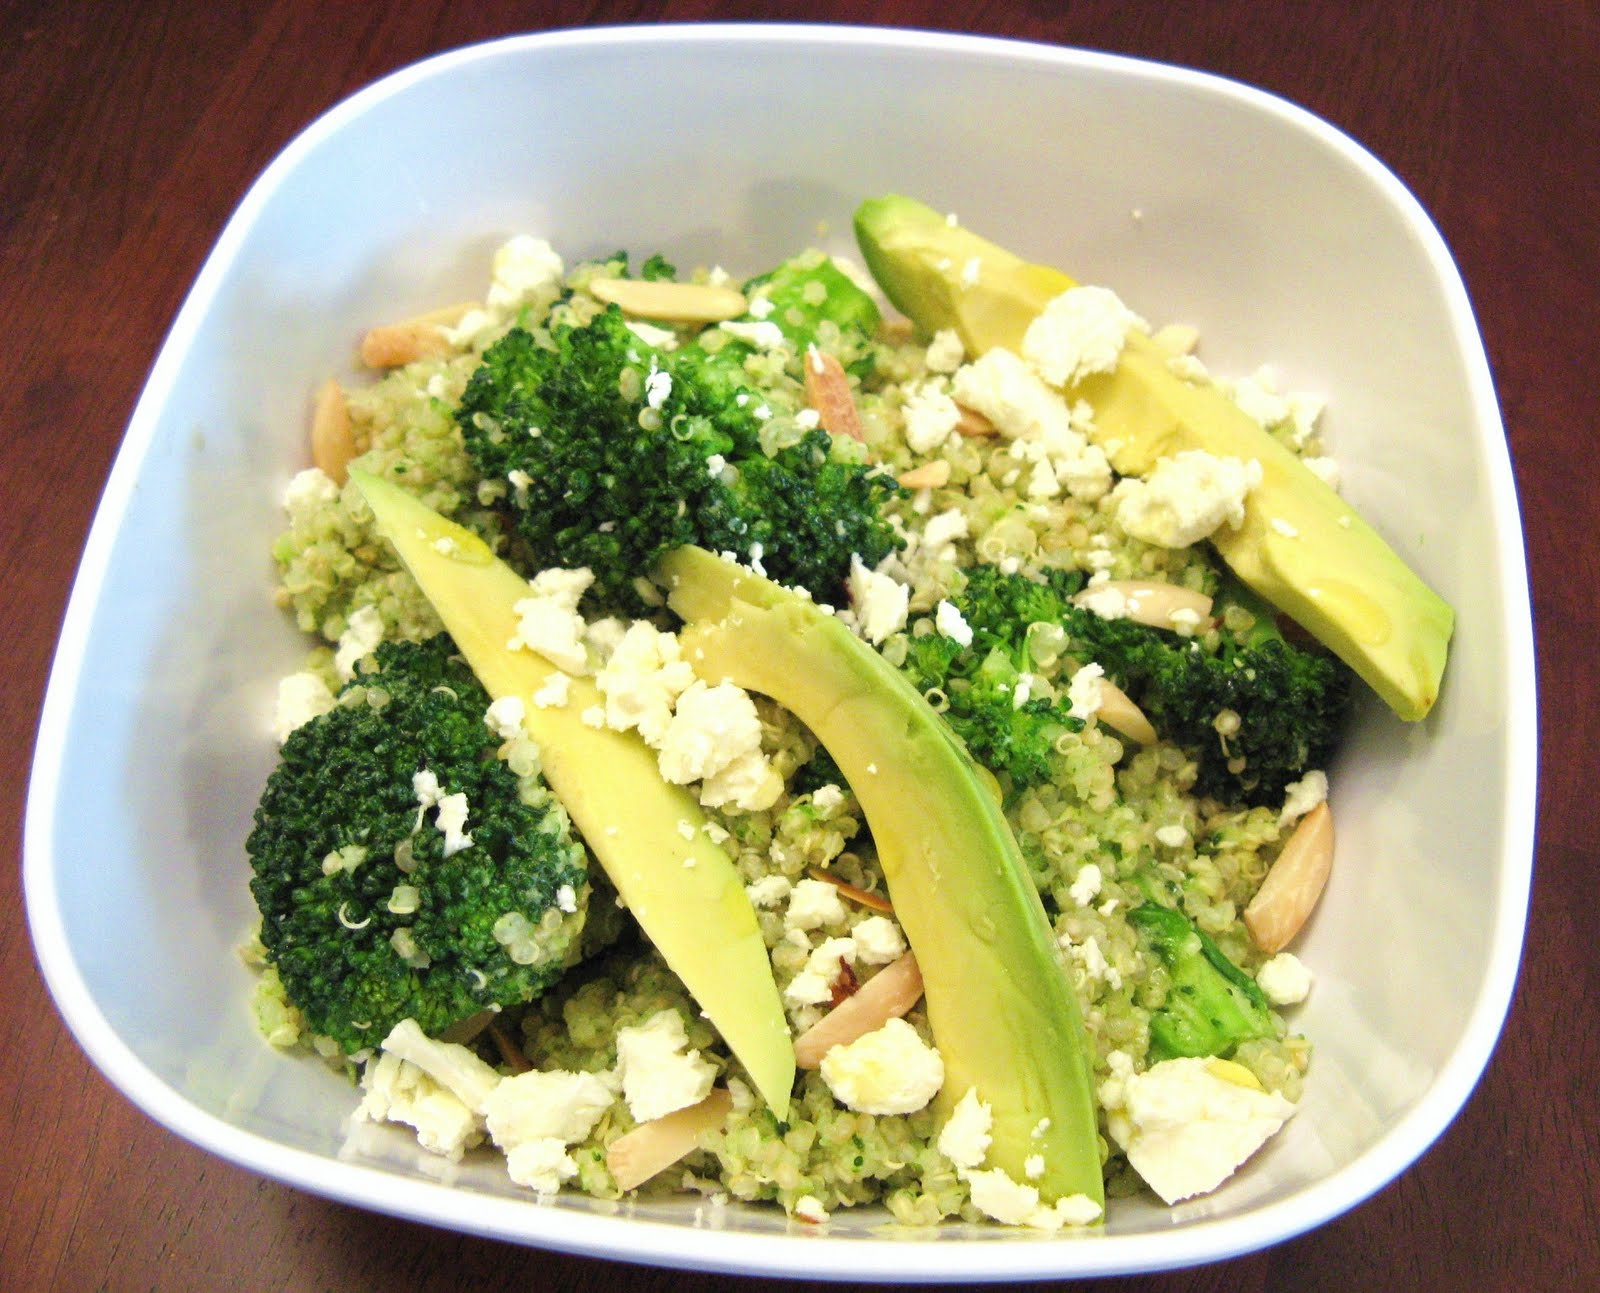 The Well-Fed Newlyweds: Double Broccoli Quinoa